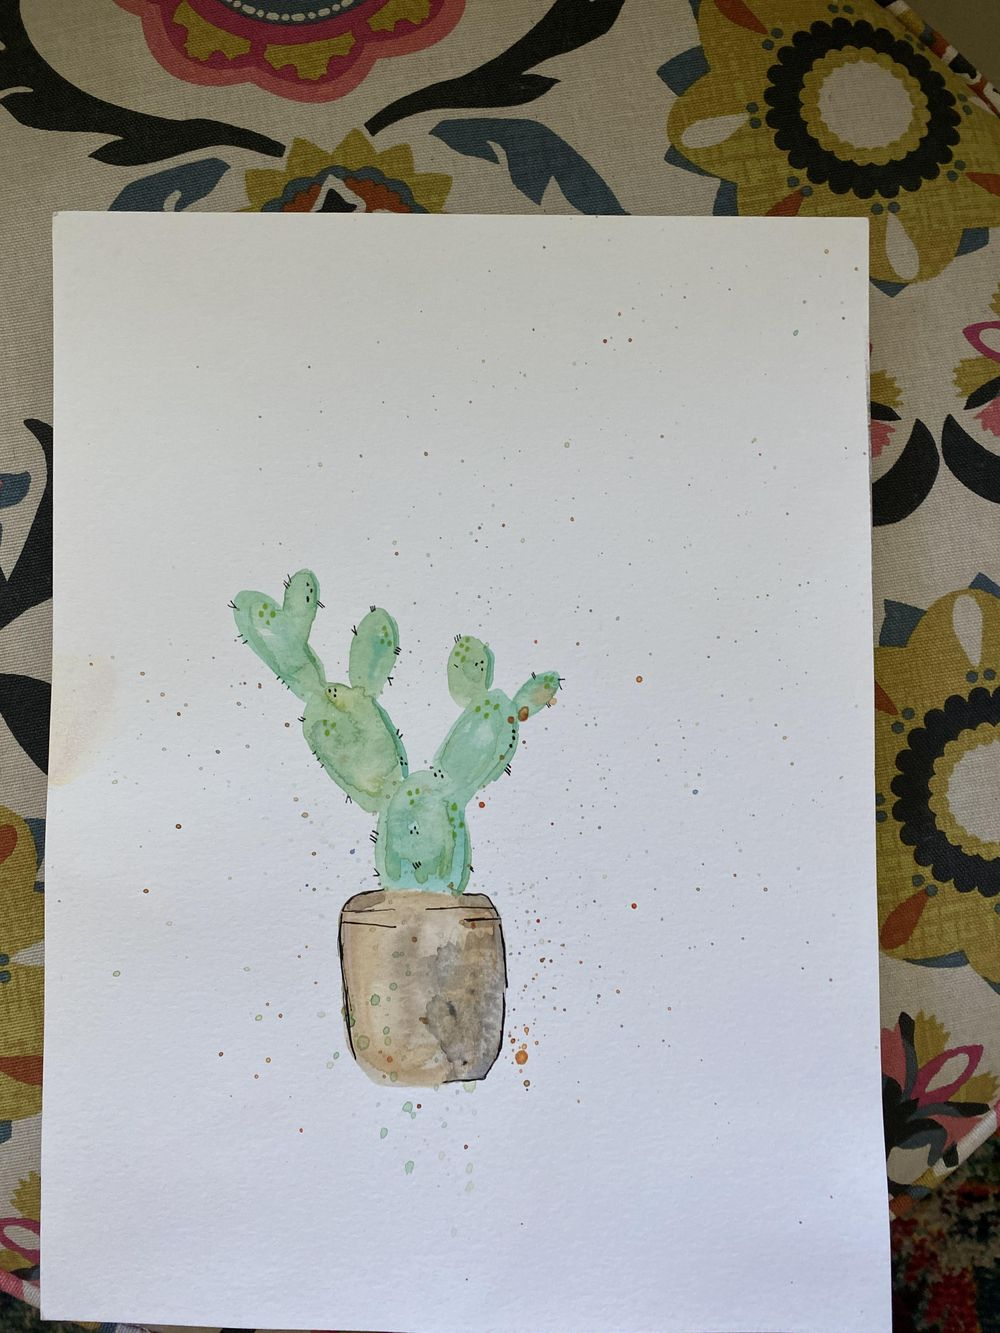 Watercolor cactus - image 1 - student project